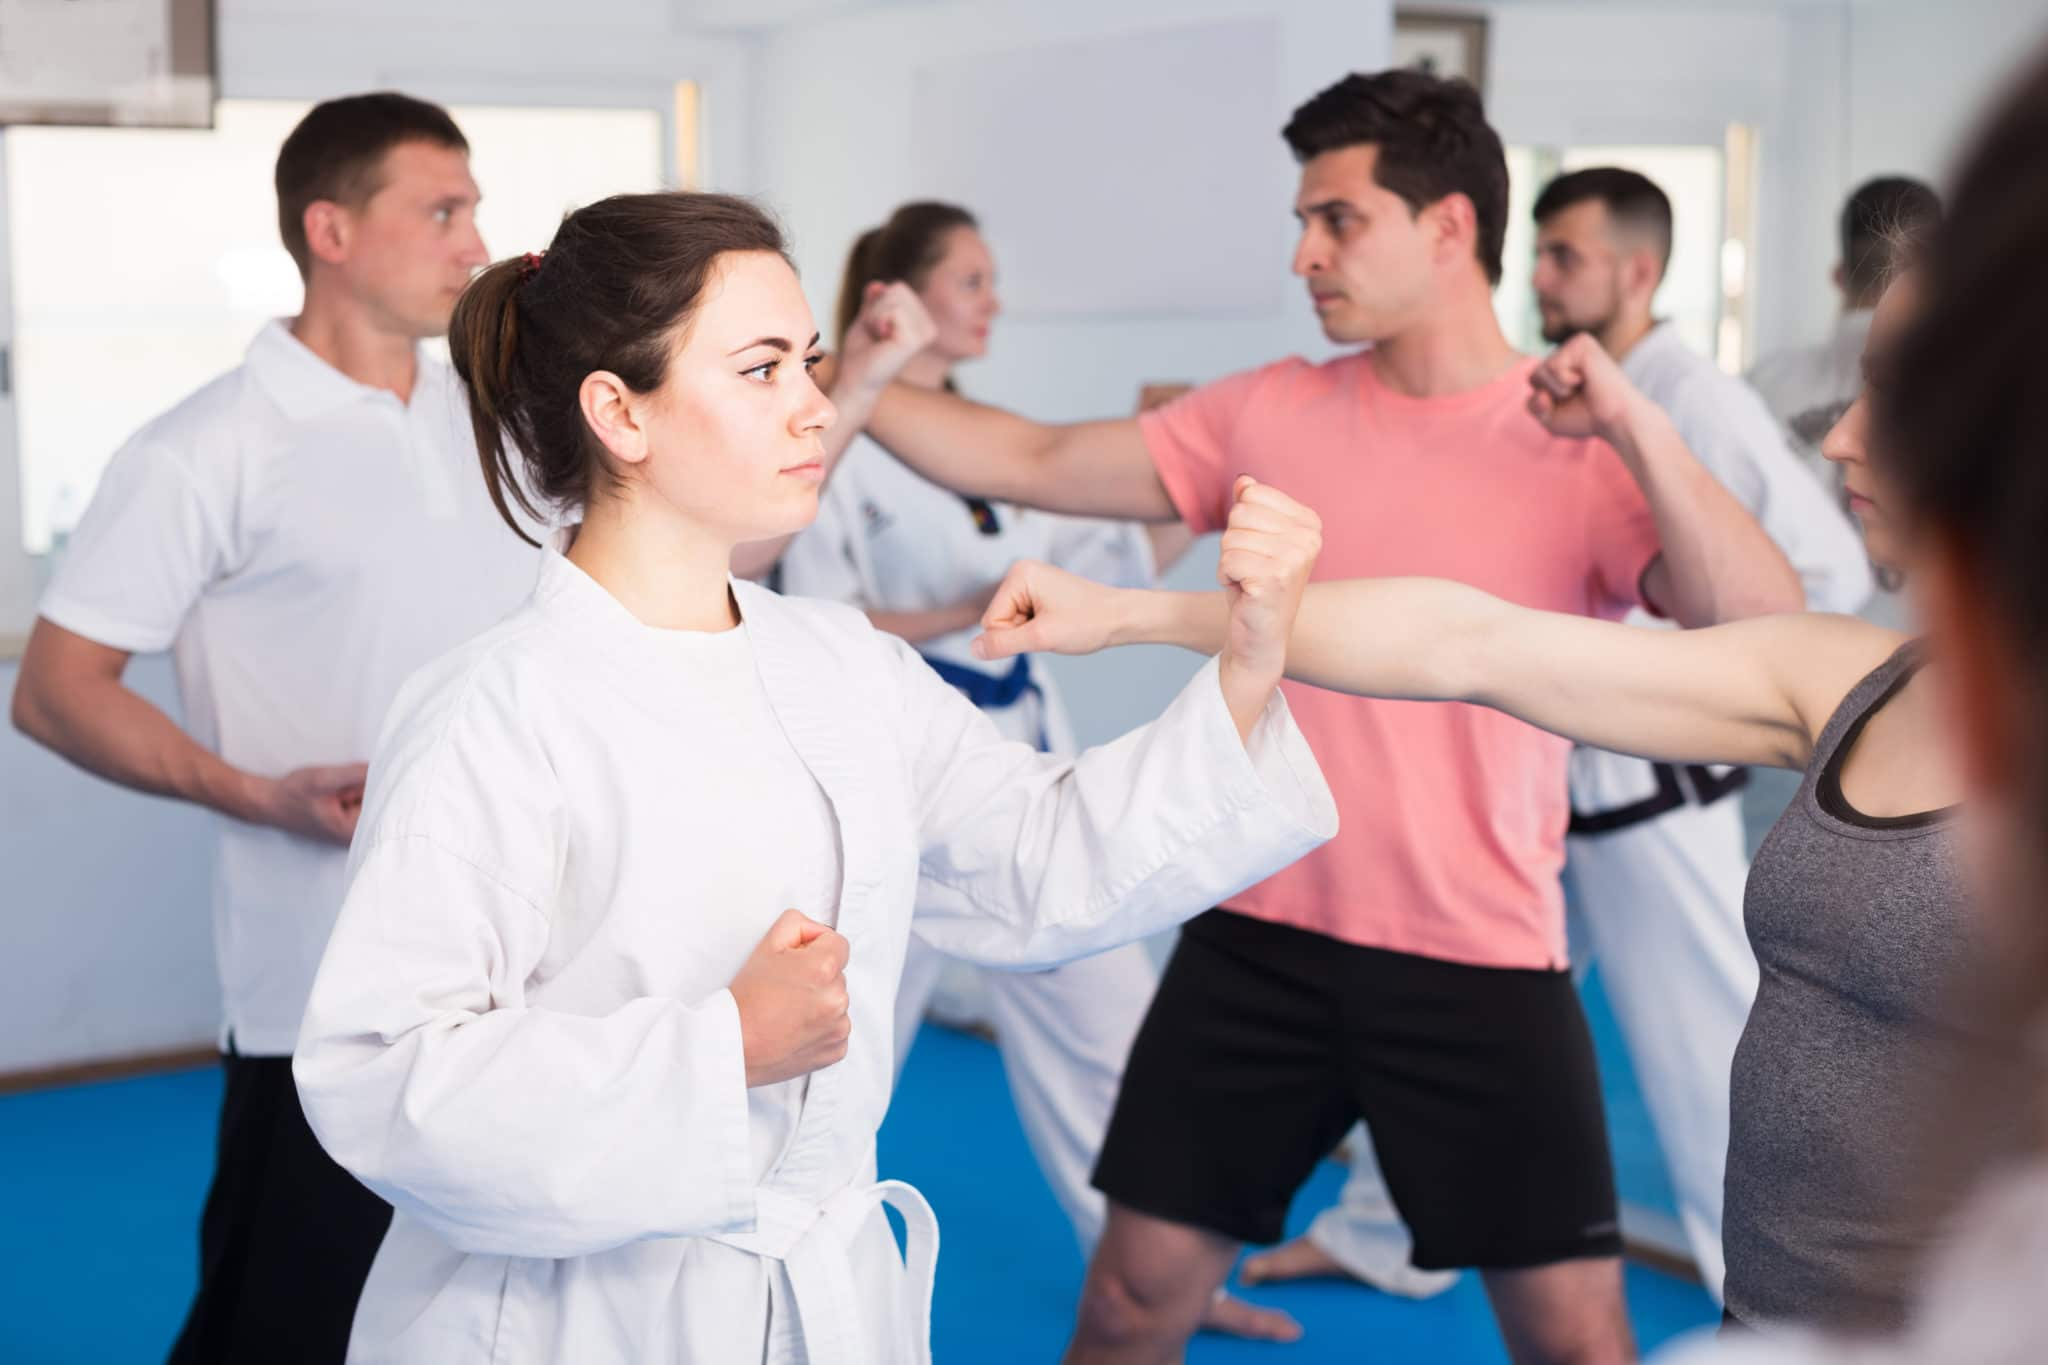 Lesson on karate in a mixed group